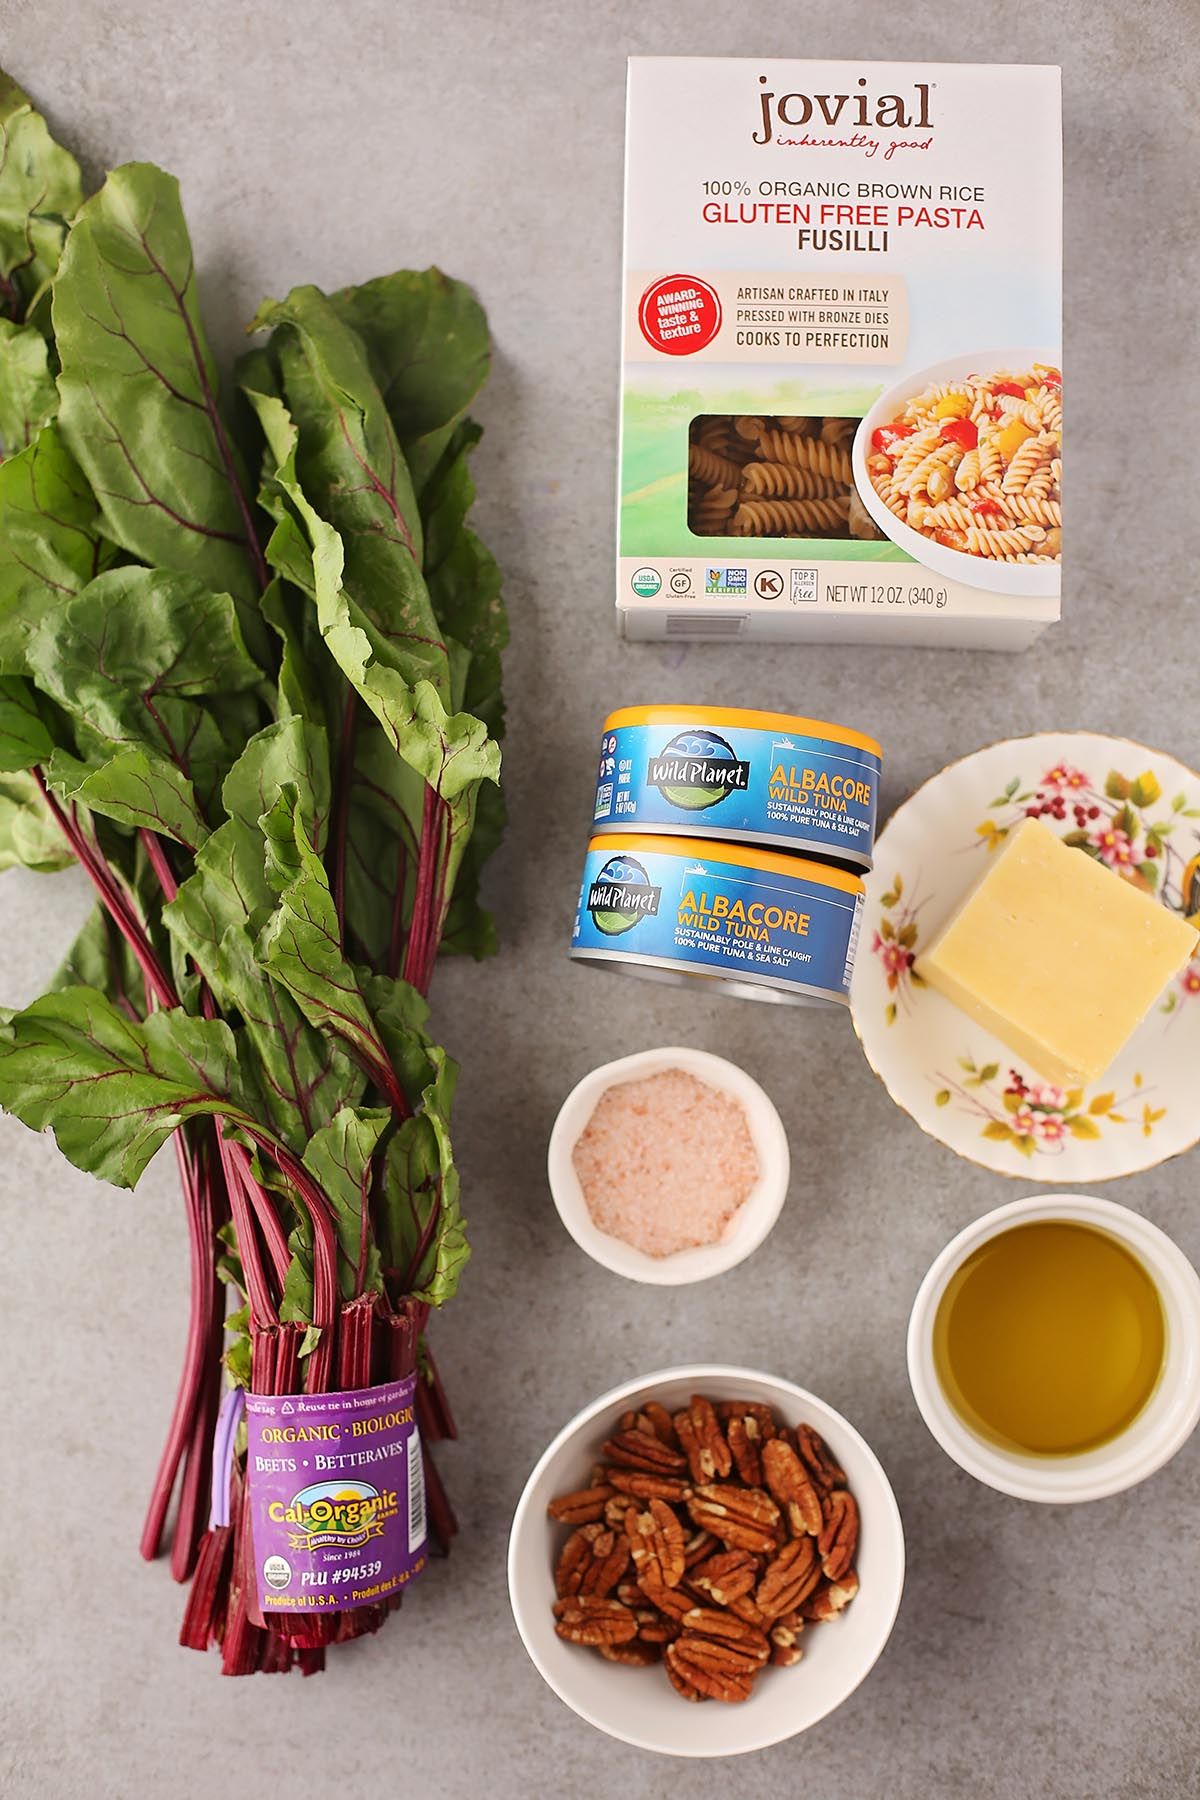 tabletop with beet greens, pecans in the small dish, salt in the dish, canned tuna and package with pasta